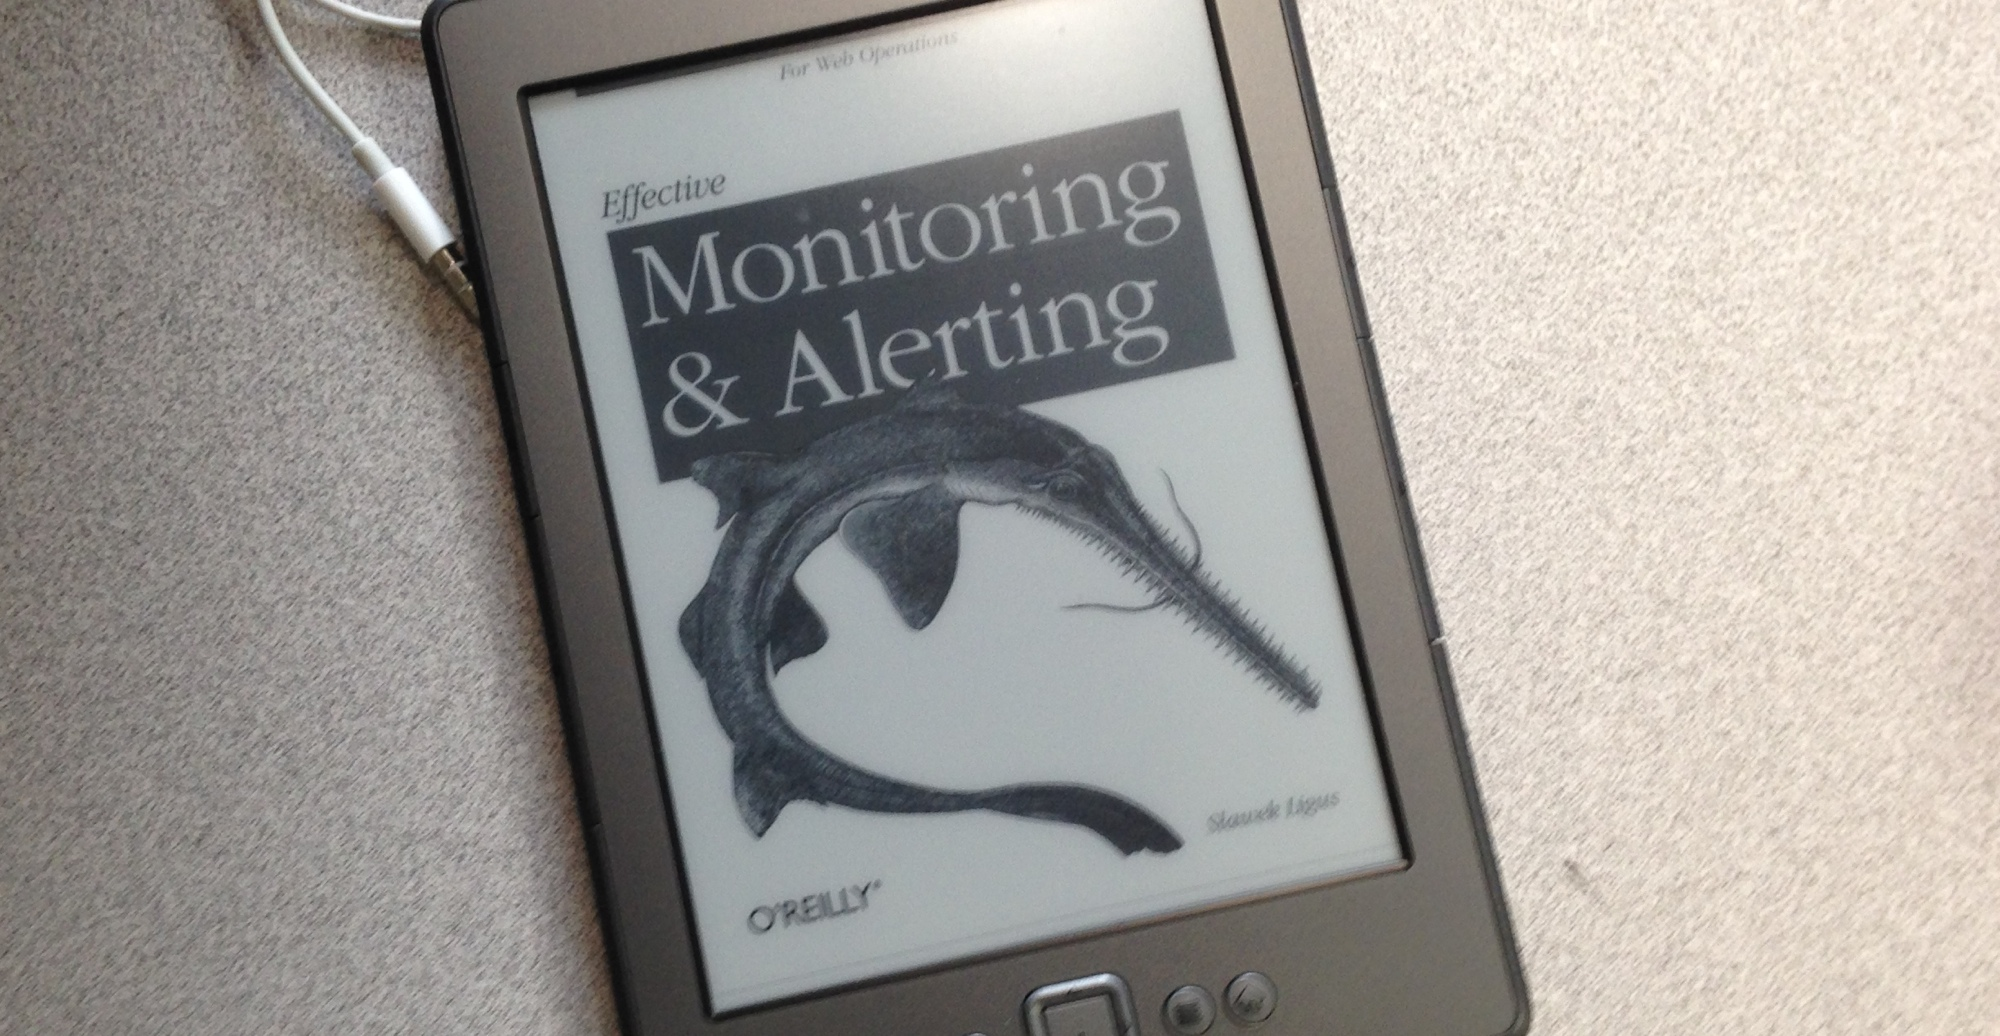 Monitoring Book Image